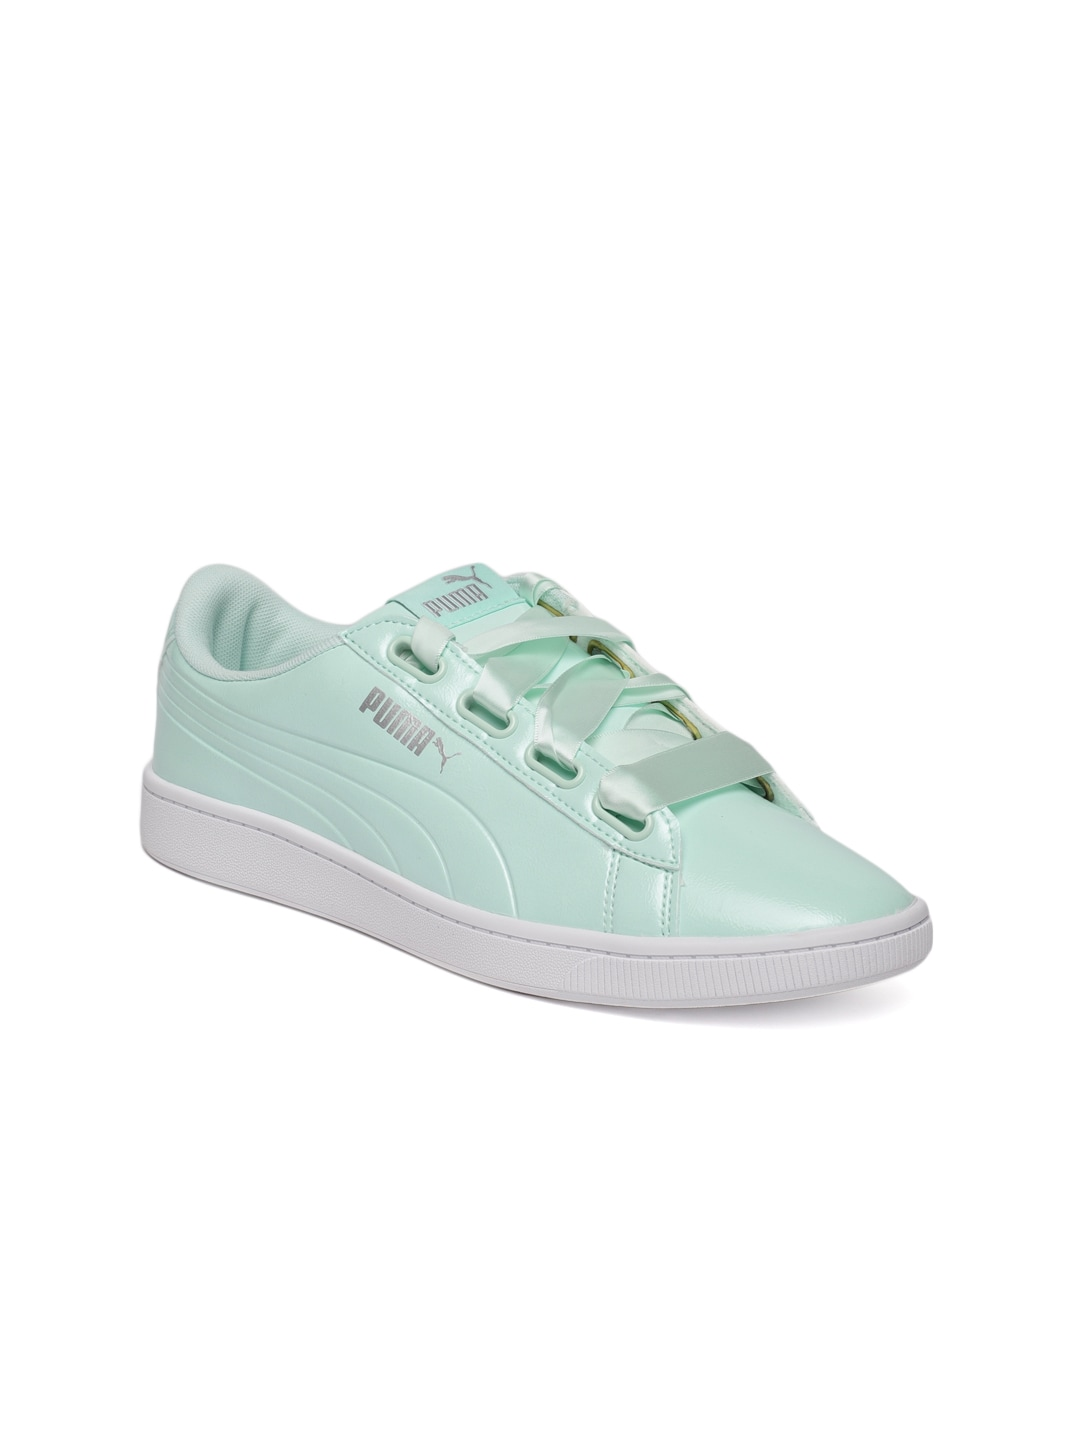 69f3bdbf2bb4 Puma Women Shoe - Buy Puma Women Shoe online in India